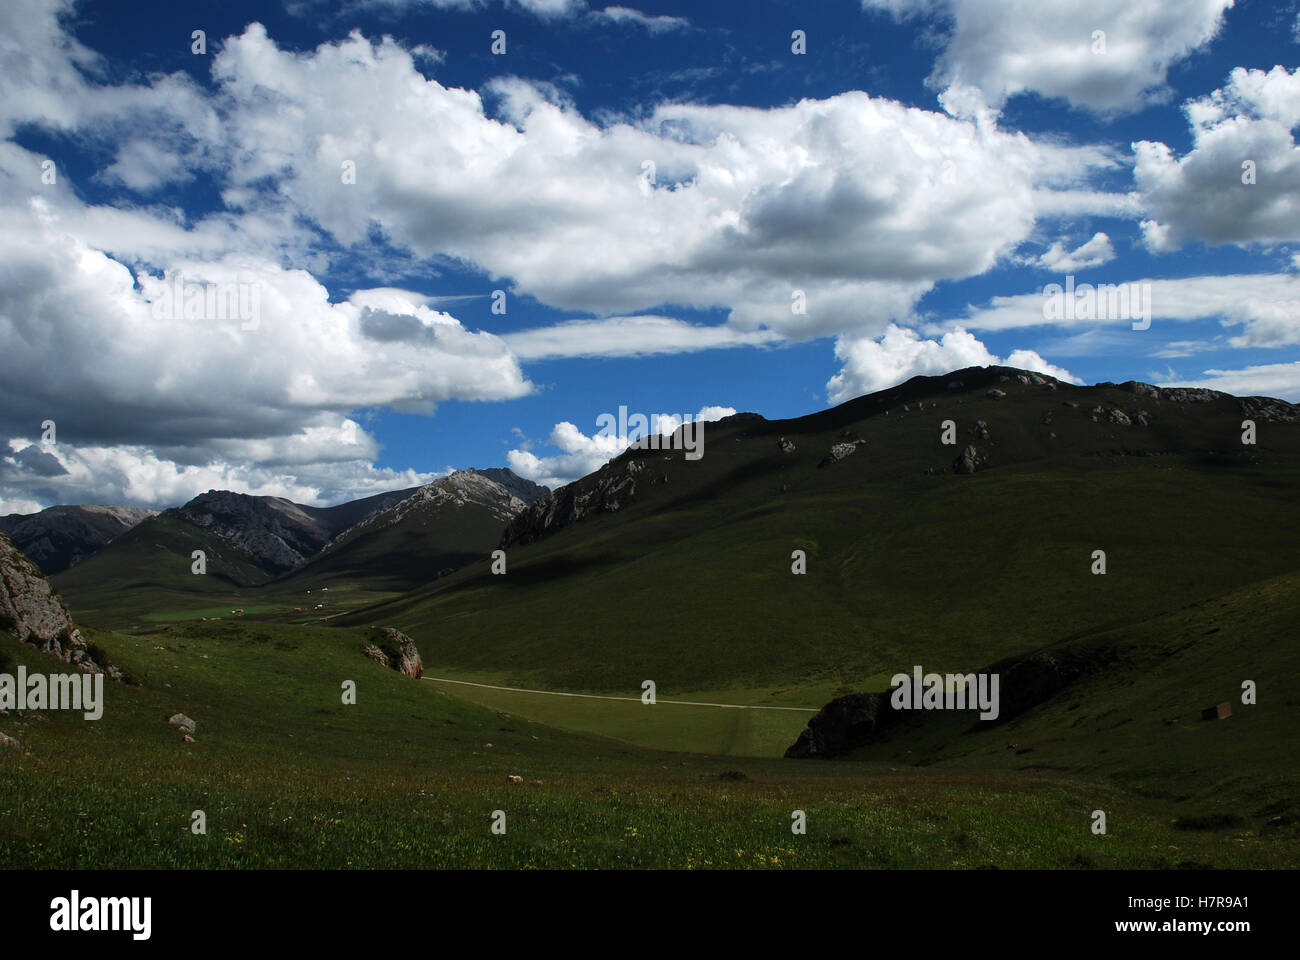 Mountain in Tibet - Stock Image